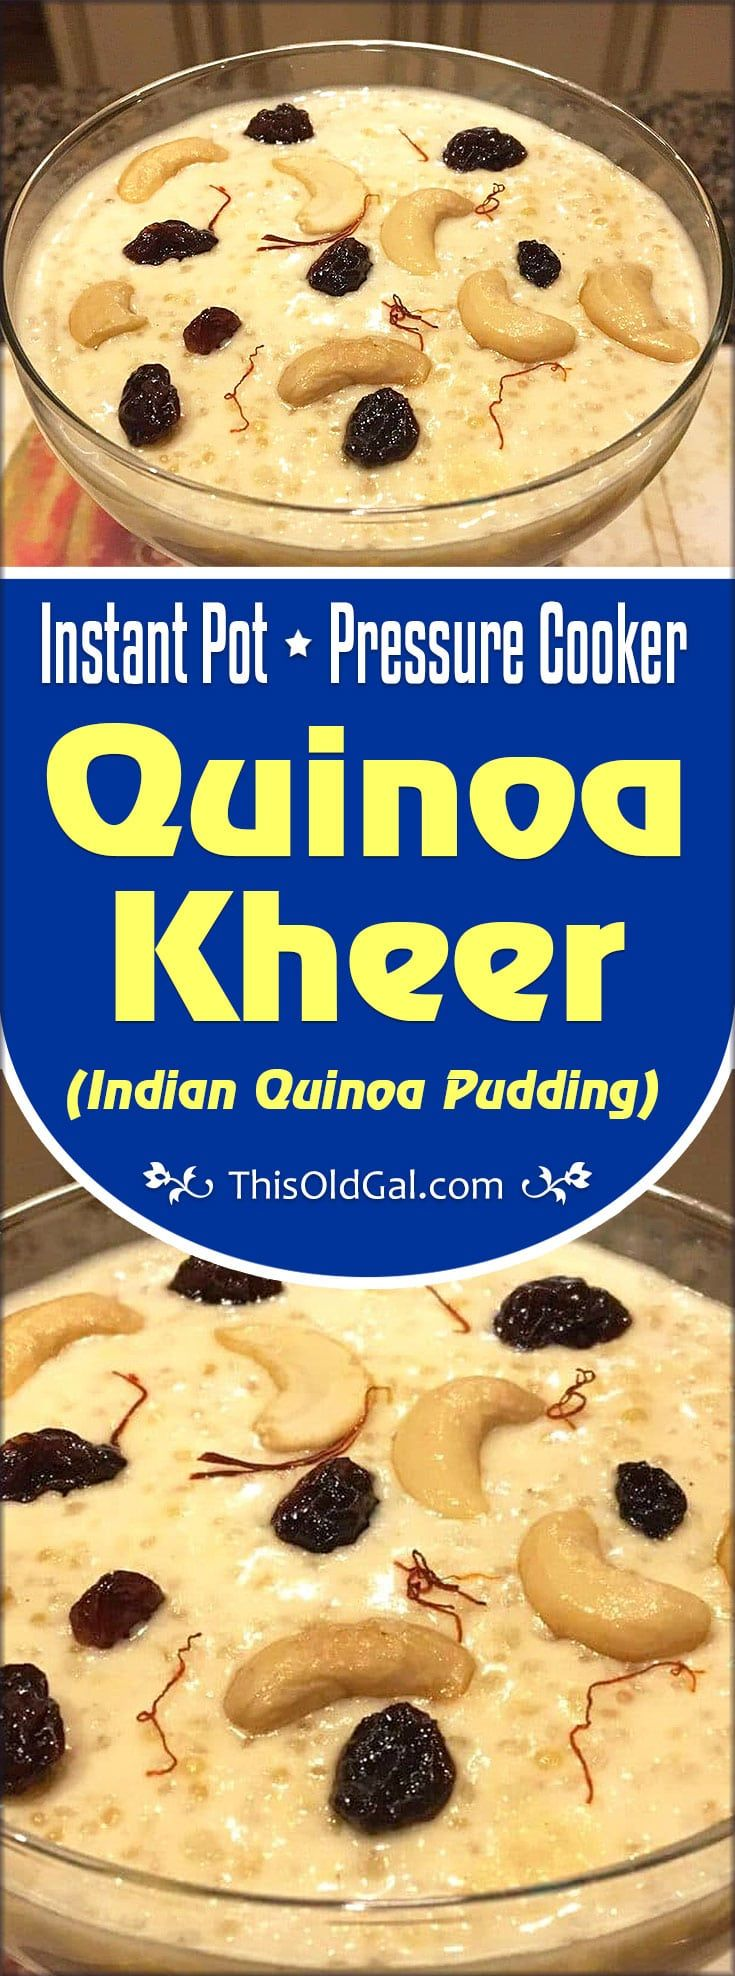 Pressure Cooker Quinoa Kheer {Indian Quinoa Pudding} is a healthier version of Rice Kheer, which uses Quinoa, rather than Basmati Rice. via @thisoldgalcooks